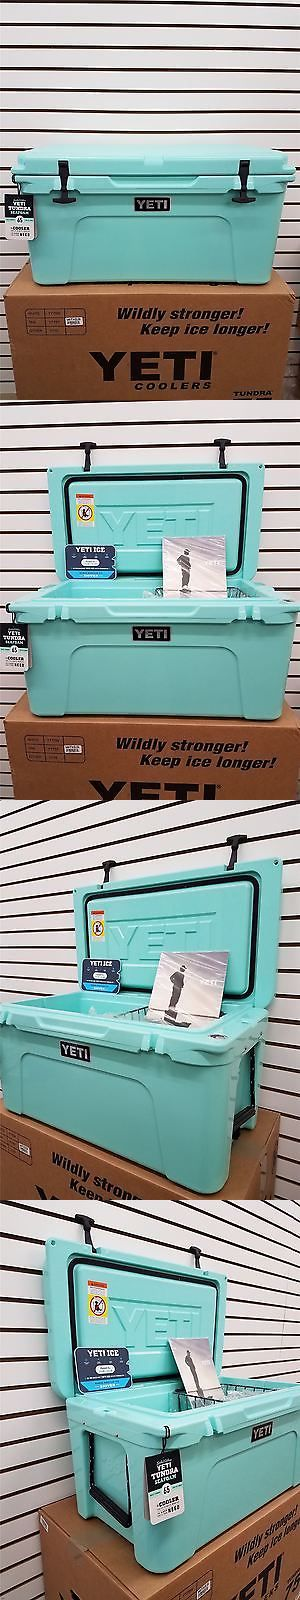 Camping Ice Boxes and Coolers 181382: Yeti Hard Cooler - Yeti Tundra 65 - Yt65s - Seafoam -> BUY IT NOW ONLY: $415.99 on eBay!